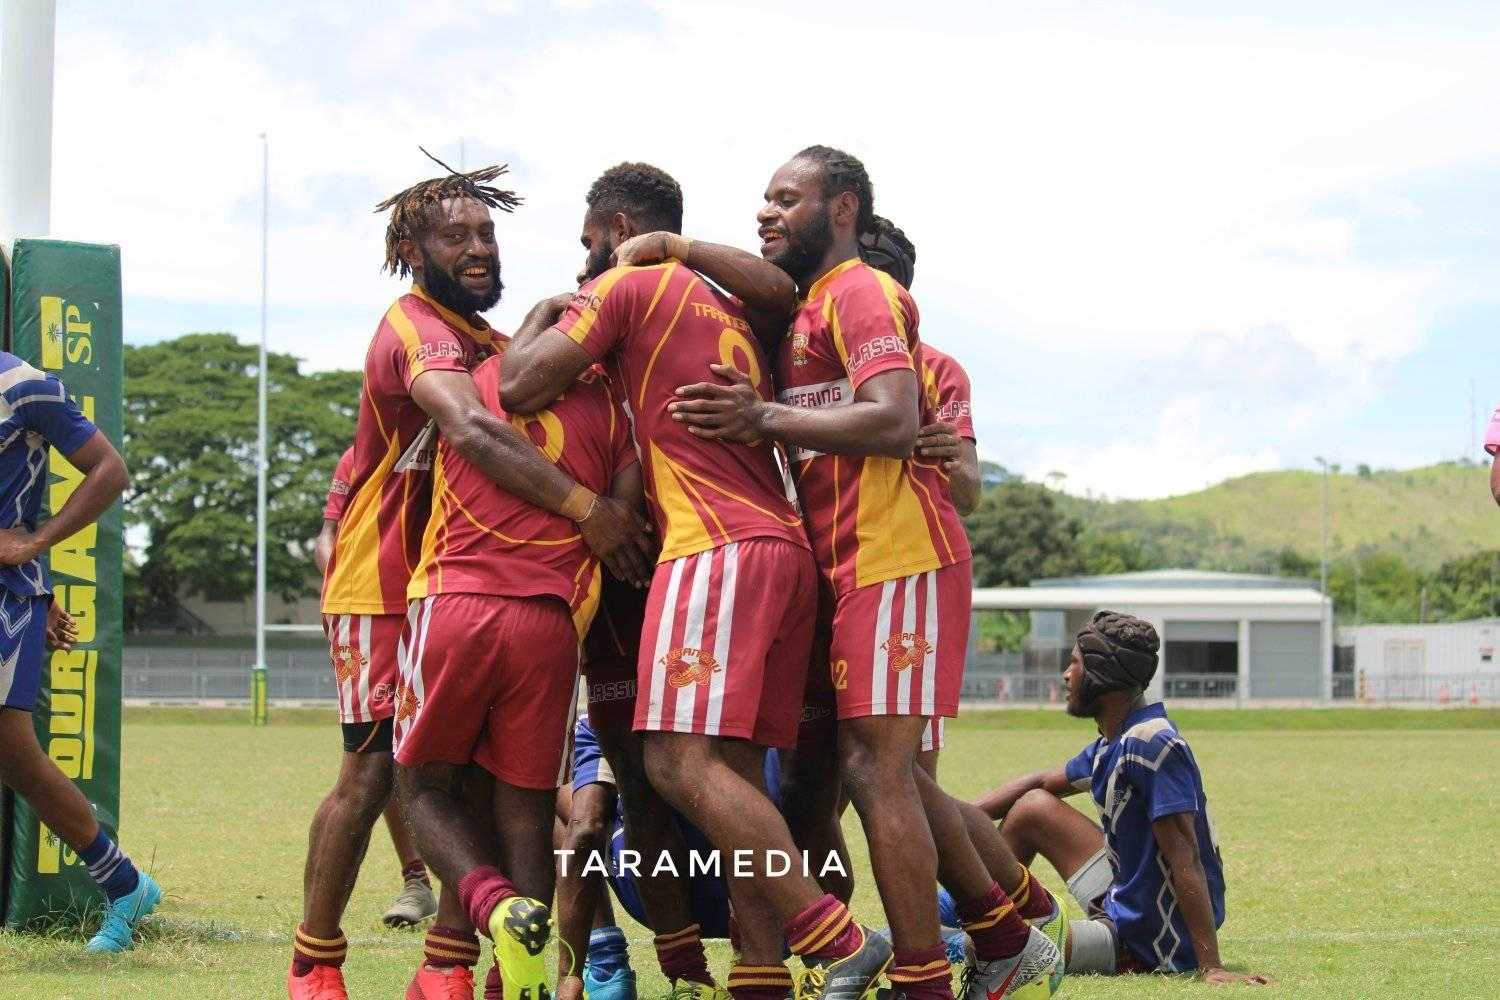 2021 Port Moresby Rugby Football League season kicks off this weekend